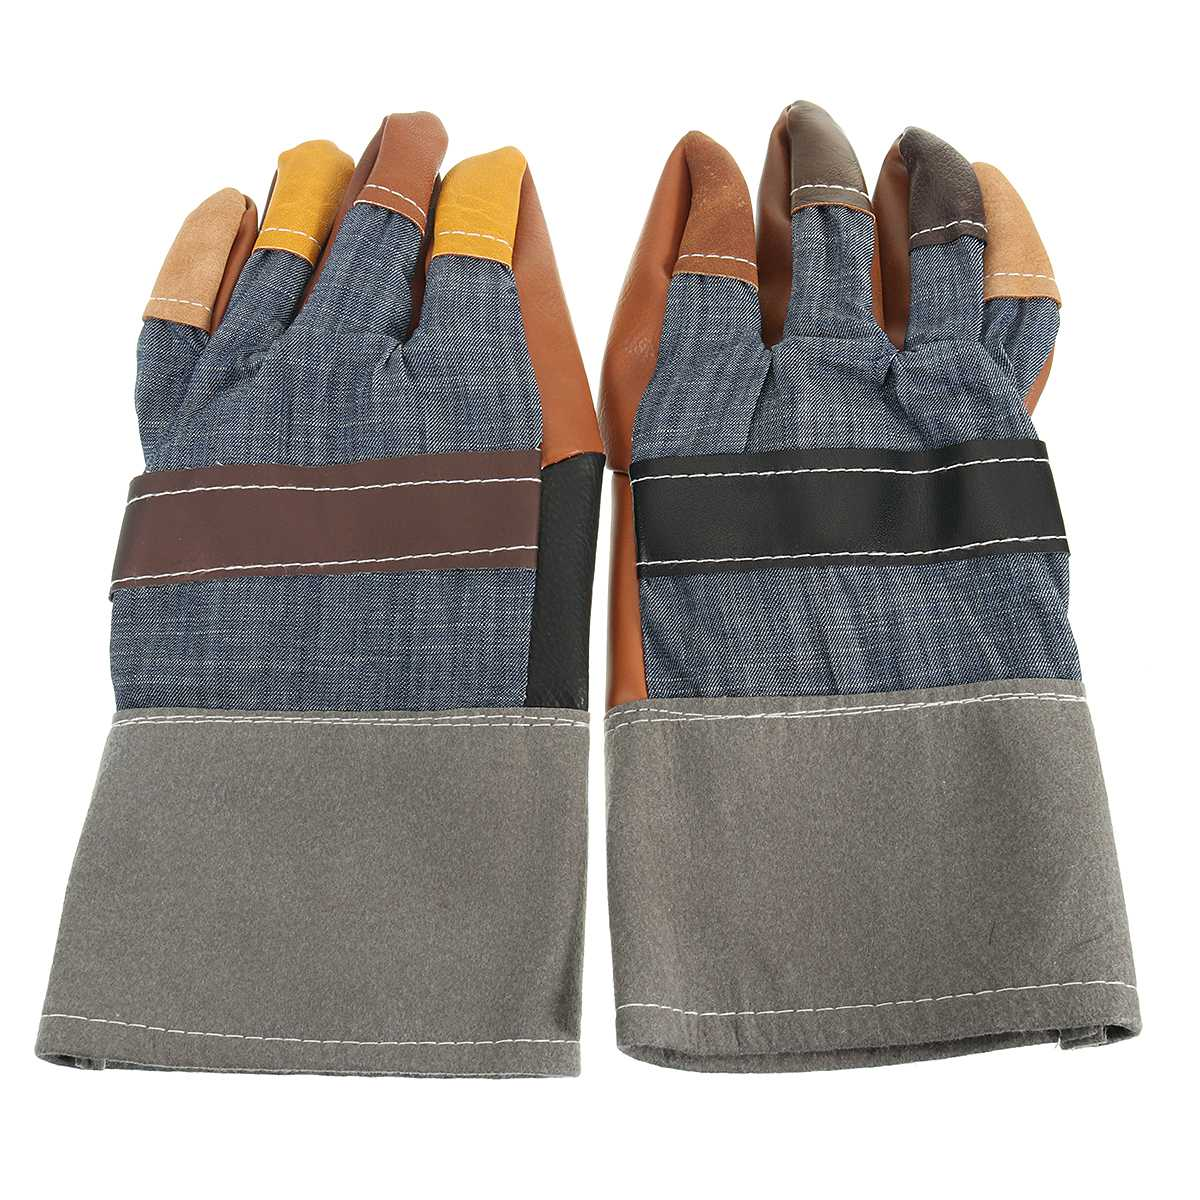 NEW Safurance Special Gloves Welder Gloves Leather Workplace Safety Hand Protection Cut Resistant strong 0 35mmpb medical x ray protective gloves ray workplace use gloves lead rubber gloves